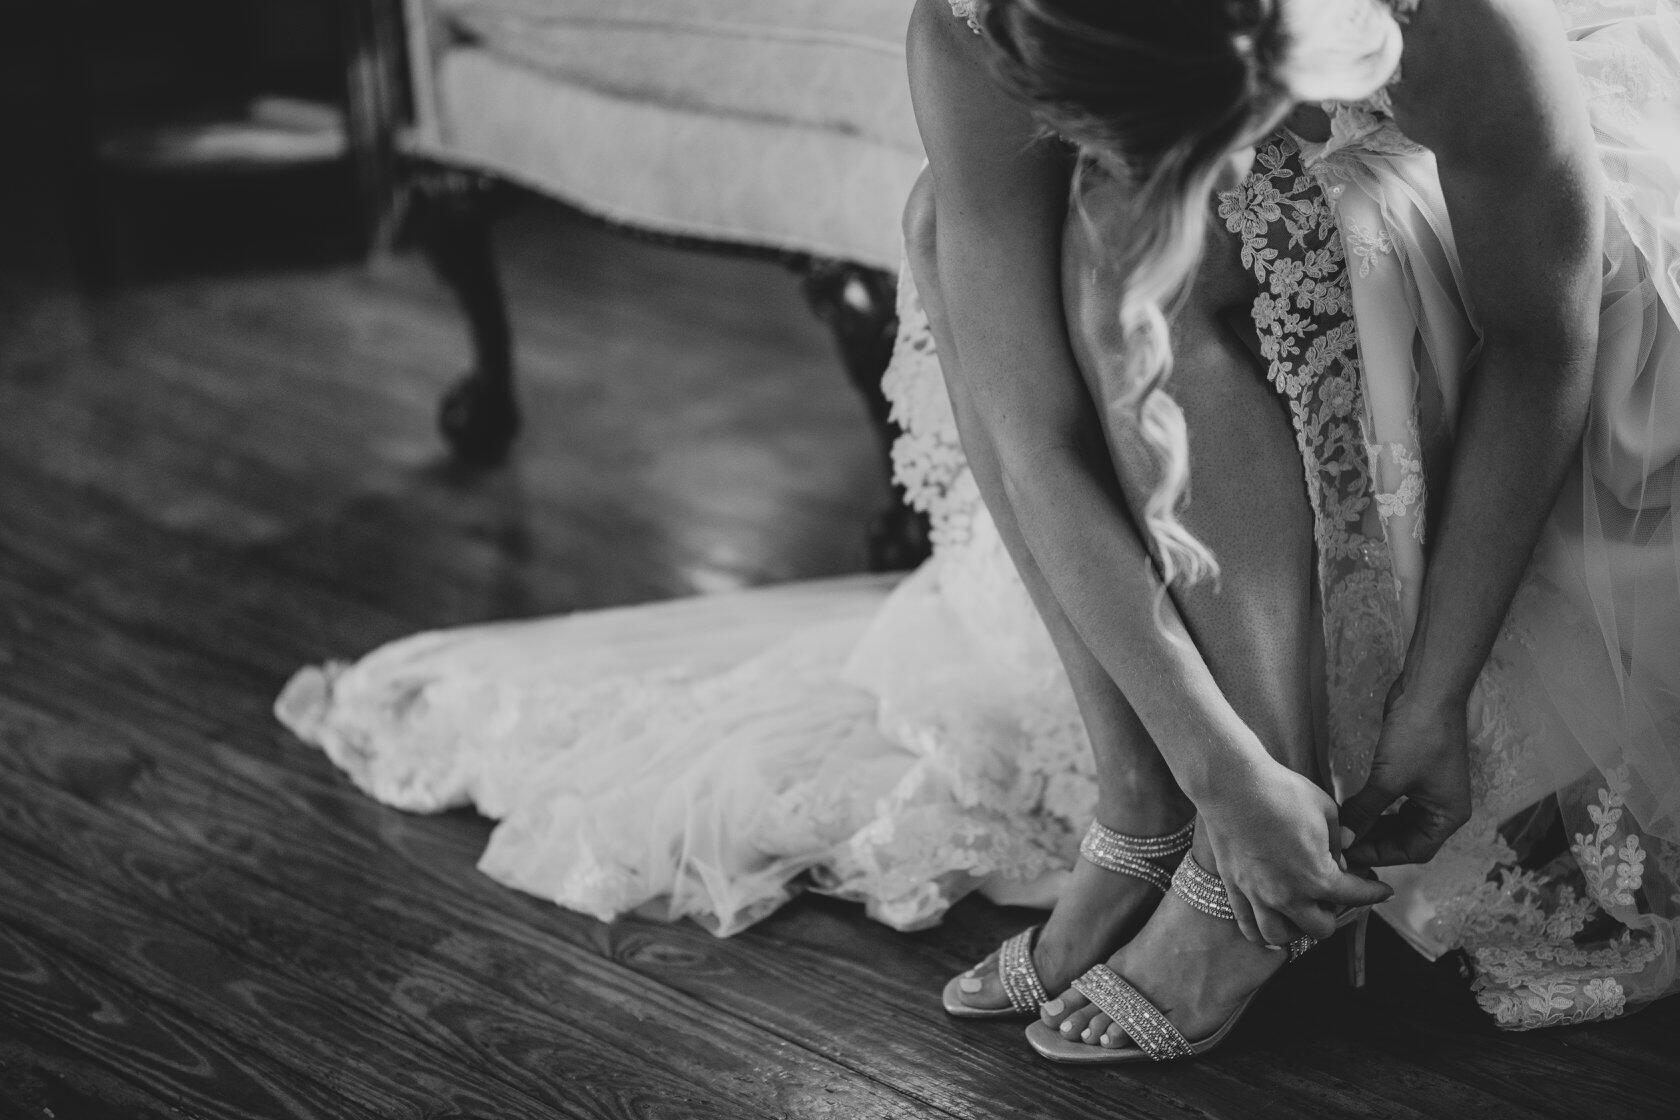 Black & white image of a bride kneeling down to buckle her shoe